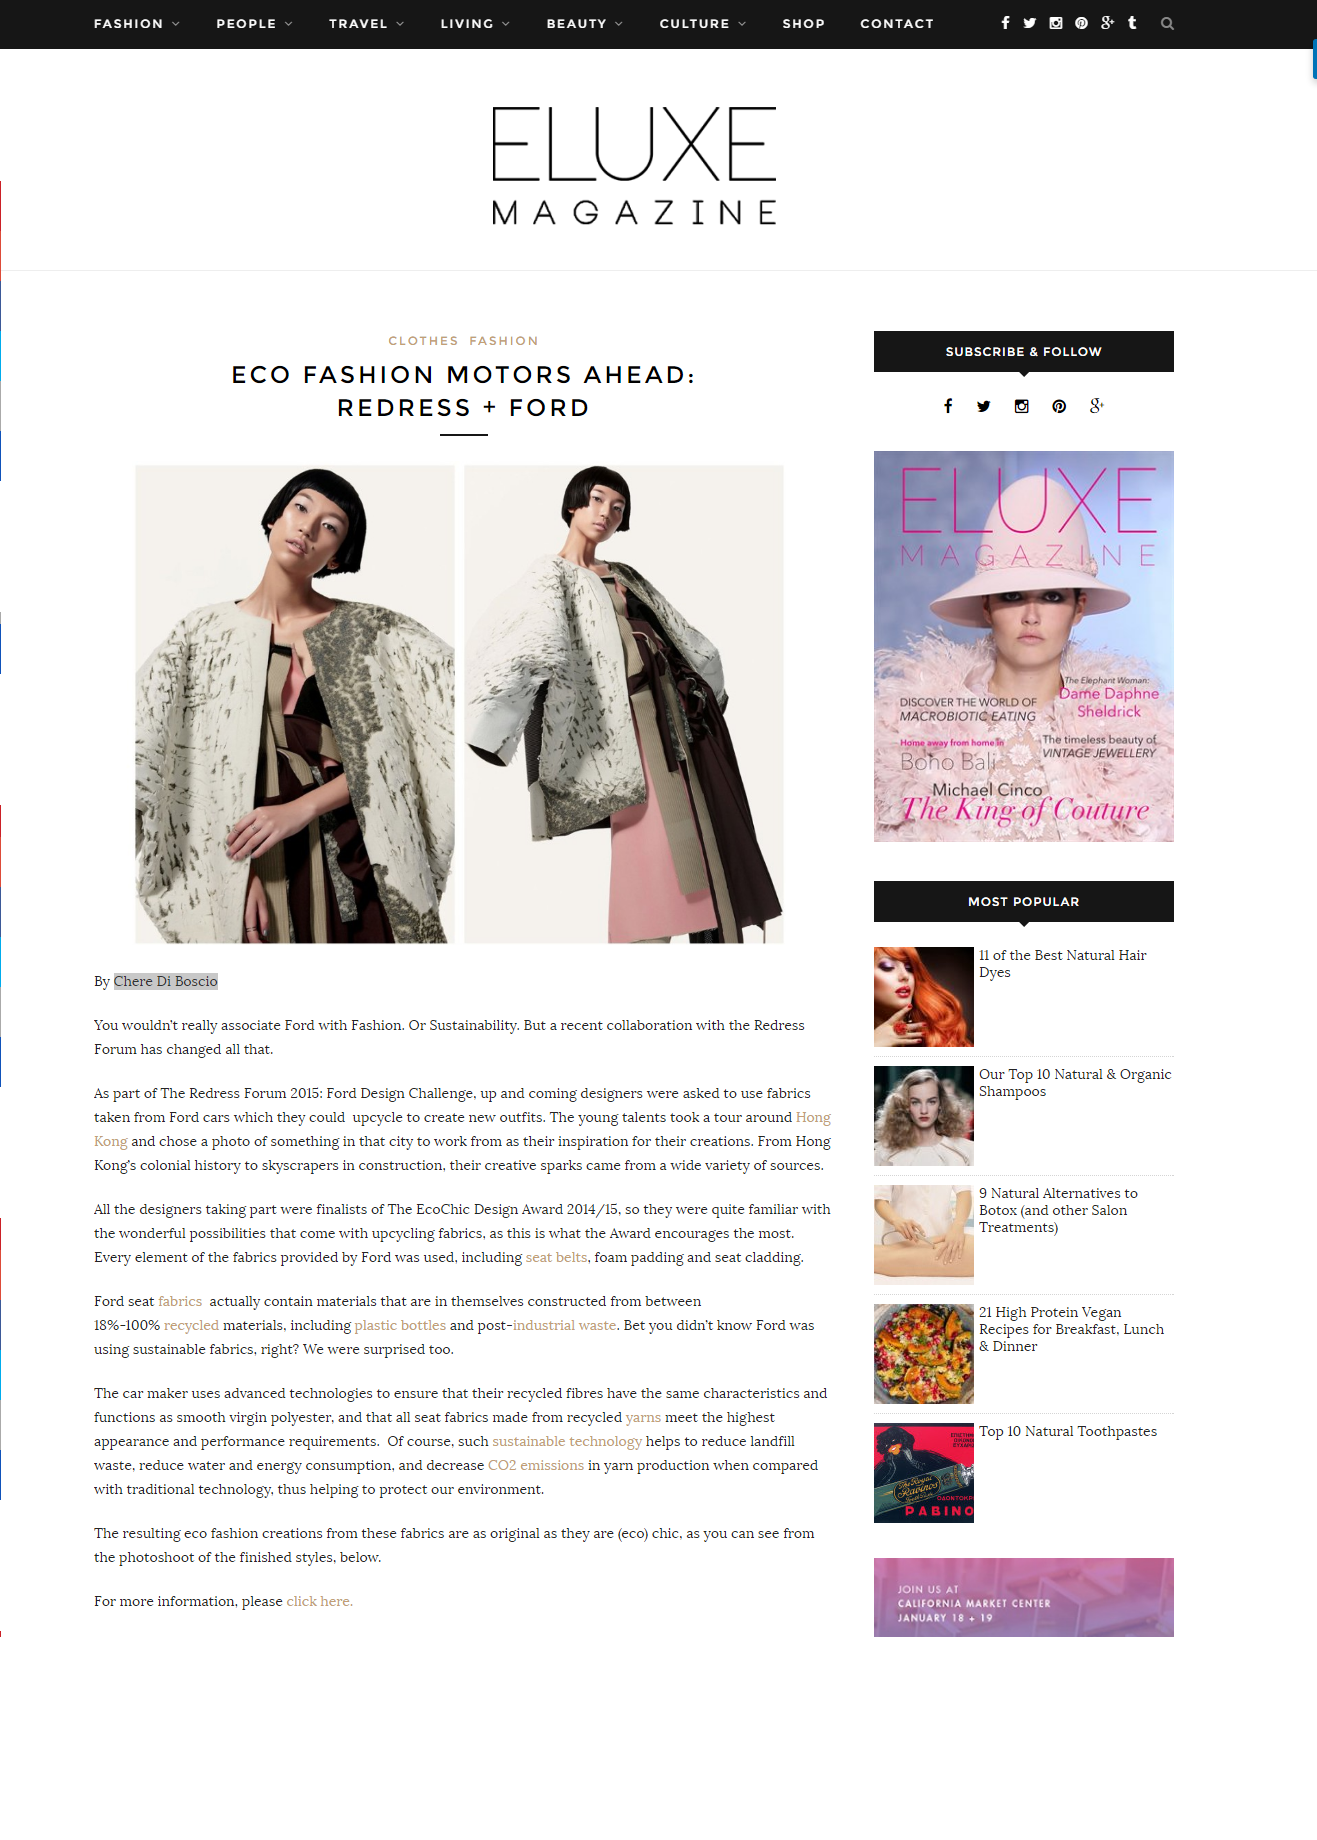 Eco Fashion Motors Ahead Redress Ford Eluxe Magazine Eco Fashion Fashion People Fashion